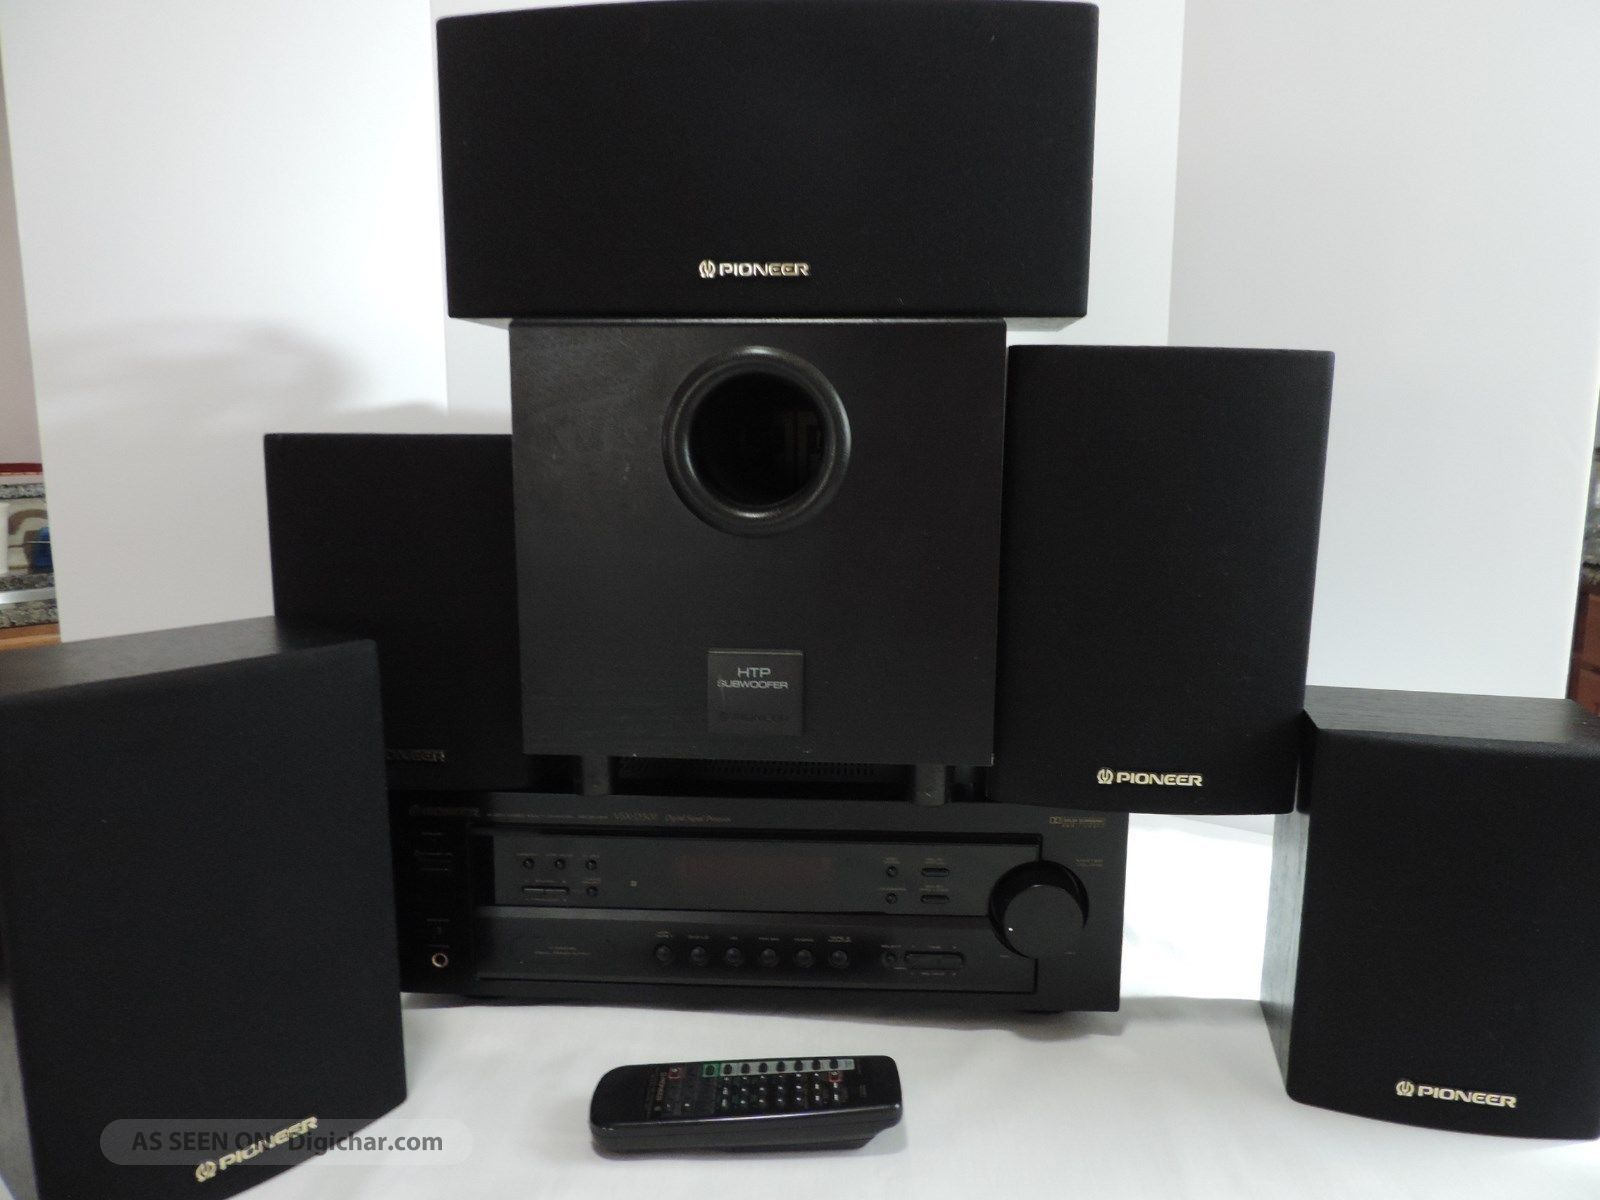 Download image Home Theater Surround Sound Speaker PC Android iPhone 1600x1200